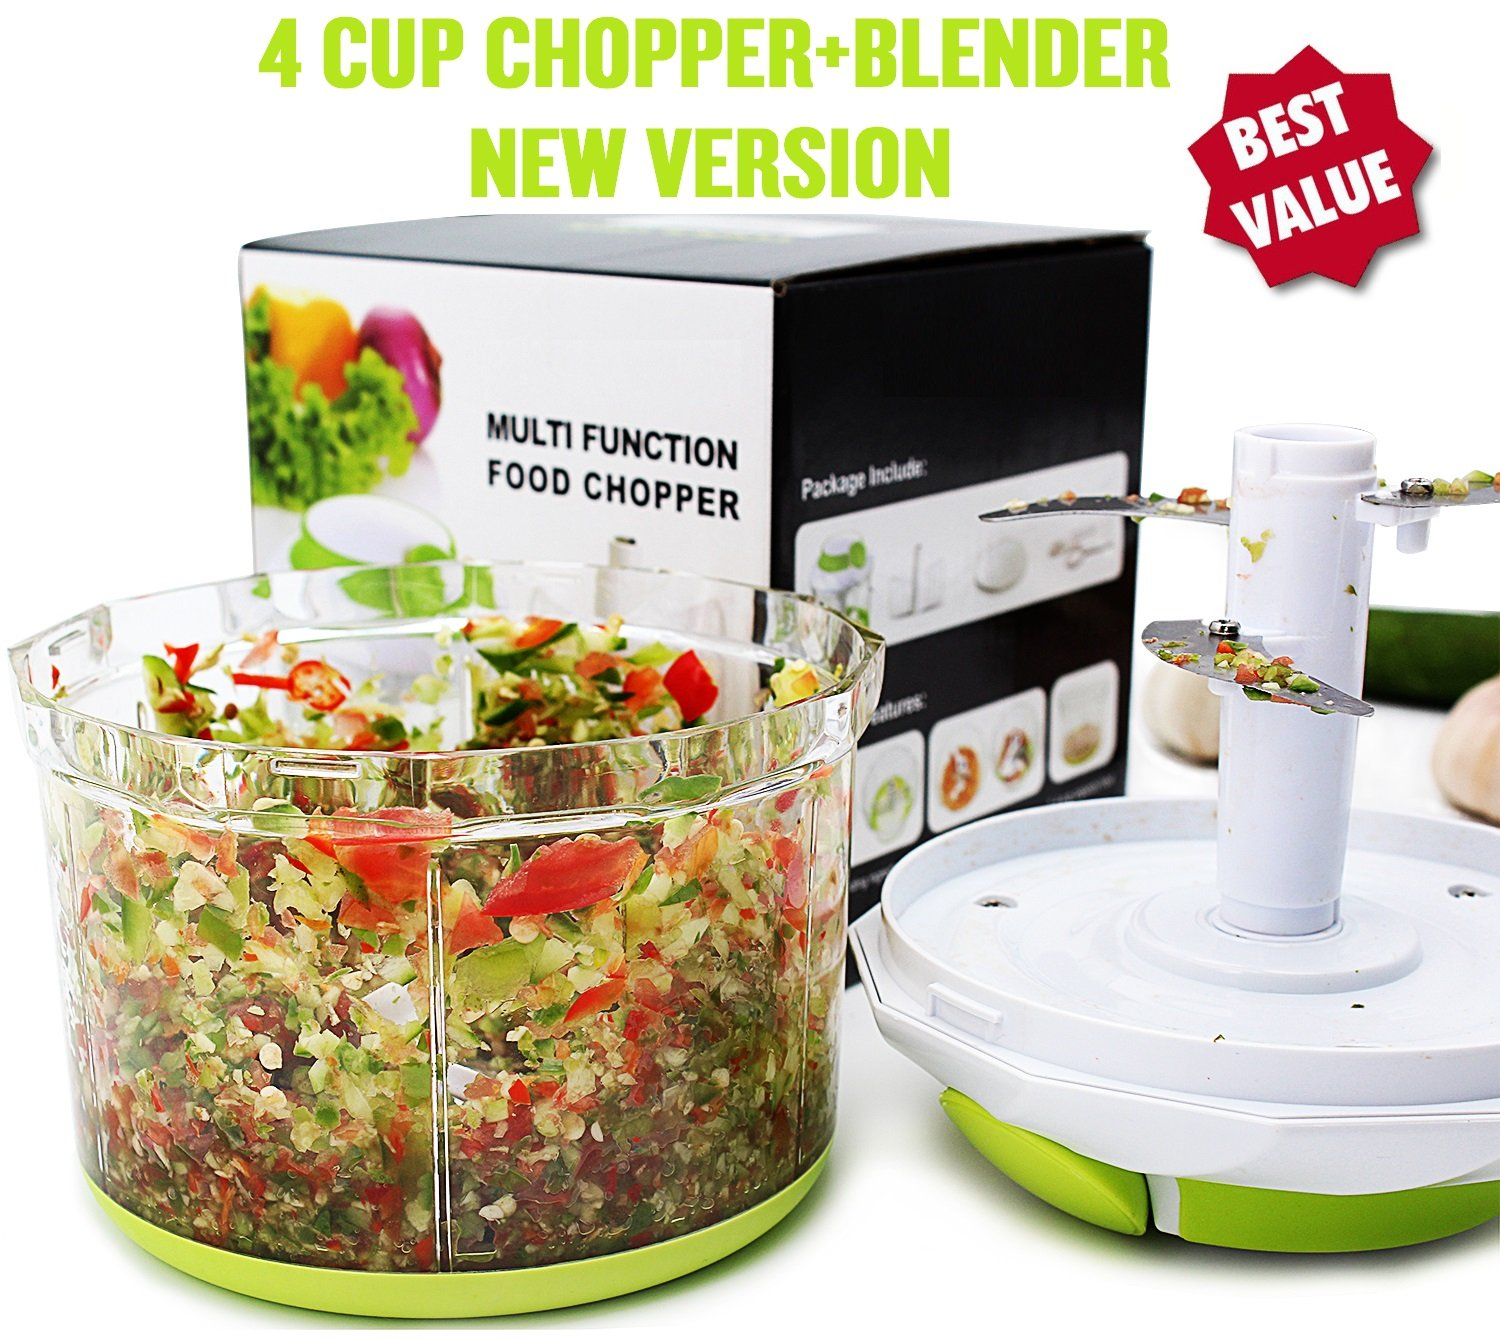 Amazon.com: Arc Shaped Blade Manual Food Chopper Compact & Hand Held  Vegetable Chopper/Mincer/Blender to Chop Fruits, Vegetables, Nuts, Herbs,  Onions, ...